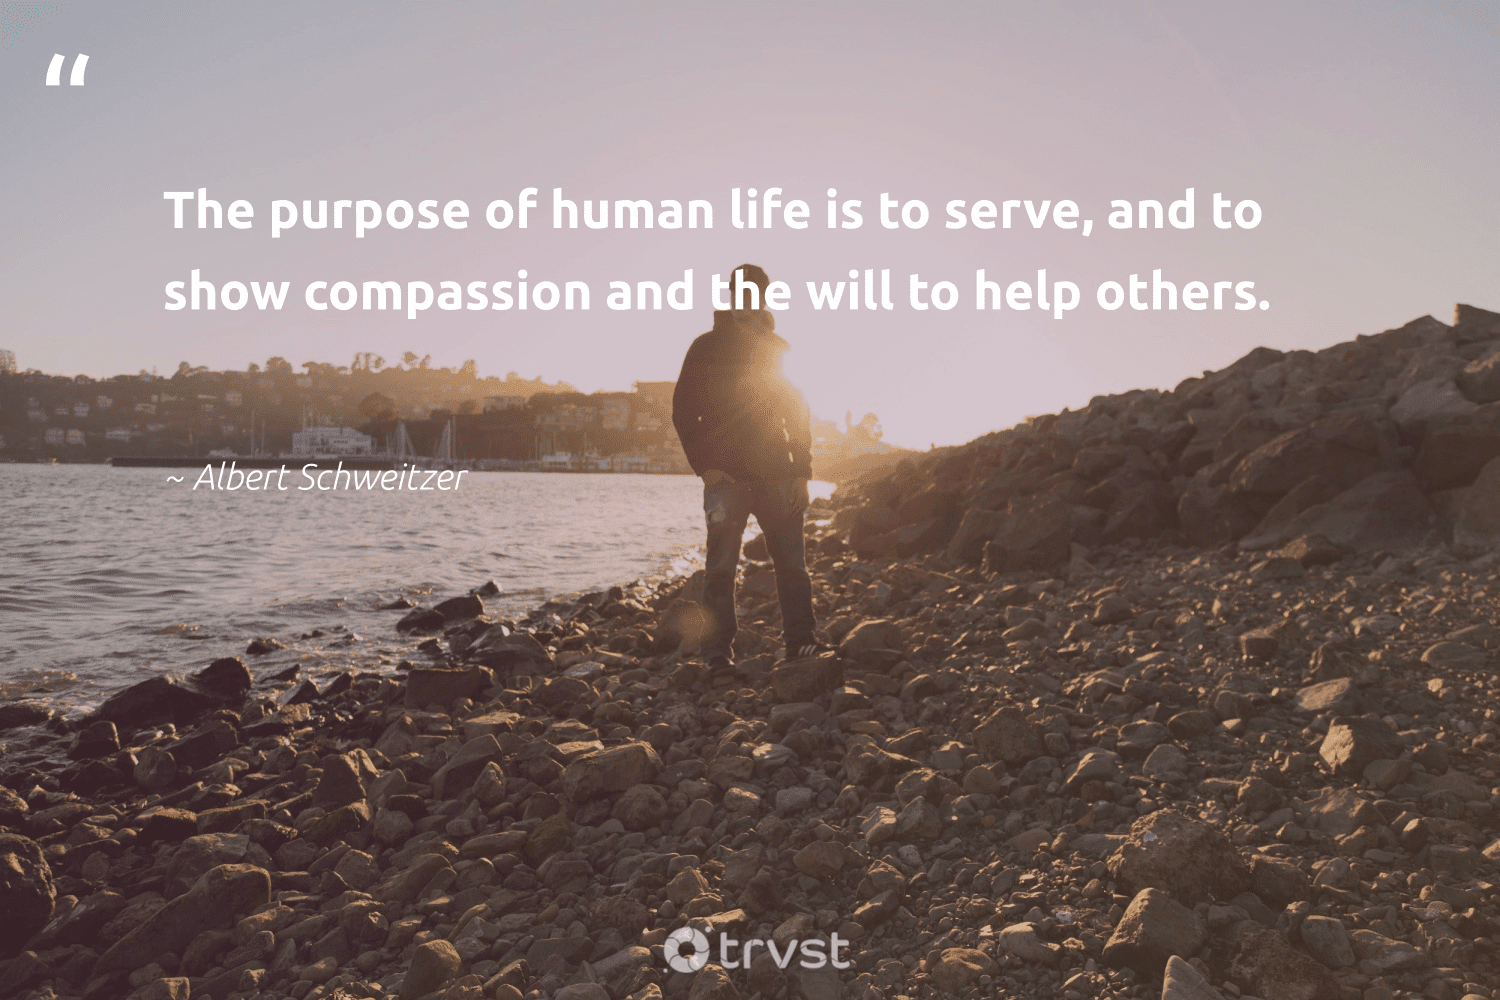 """""""The purpose of human life is to serve, and to show compassion and the will to help others.""""  - Albert Schweitzer #trvst #quotes #purpose #findingpupose #mindset #nevergiveup #changetheworld #purposedriven #changemakers #togetherwecan #ecoconscious #findpurpose"""